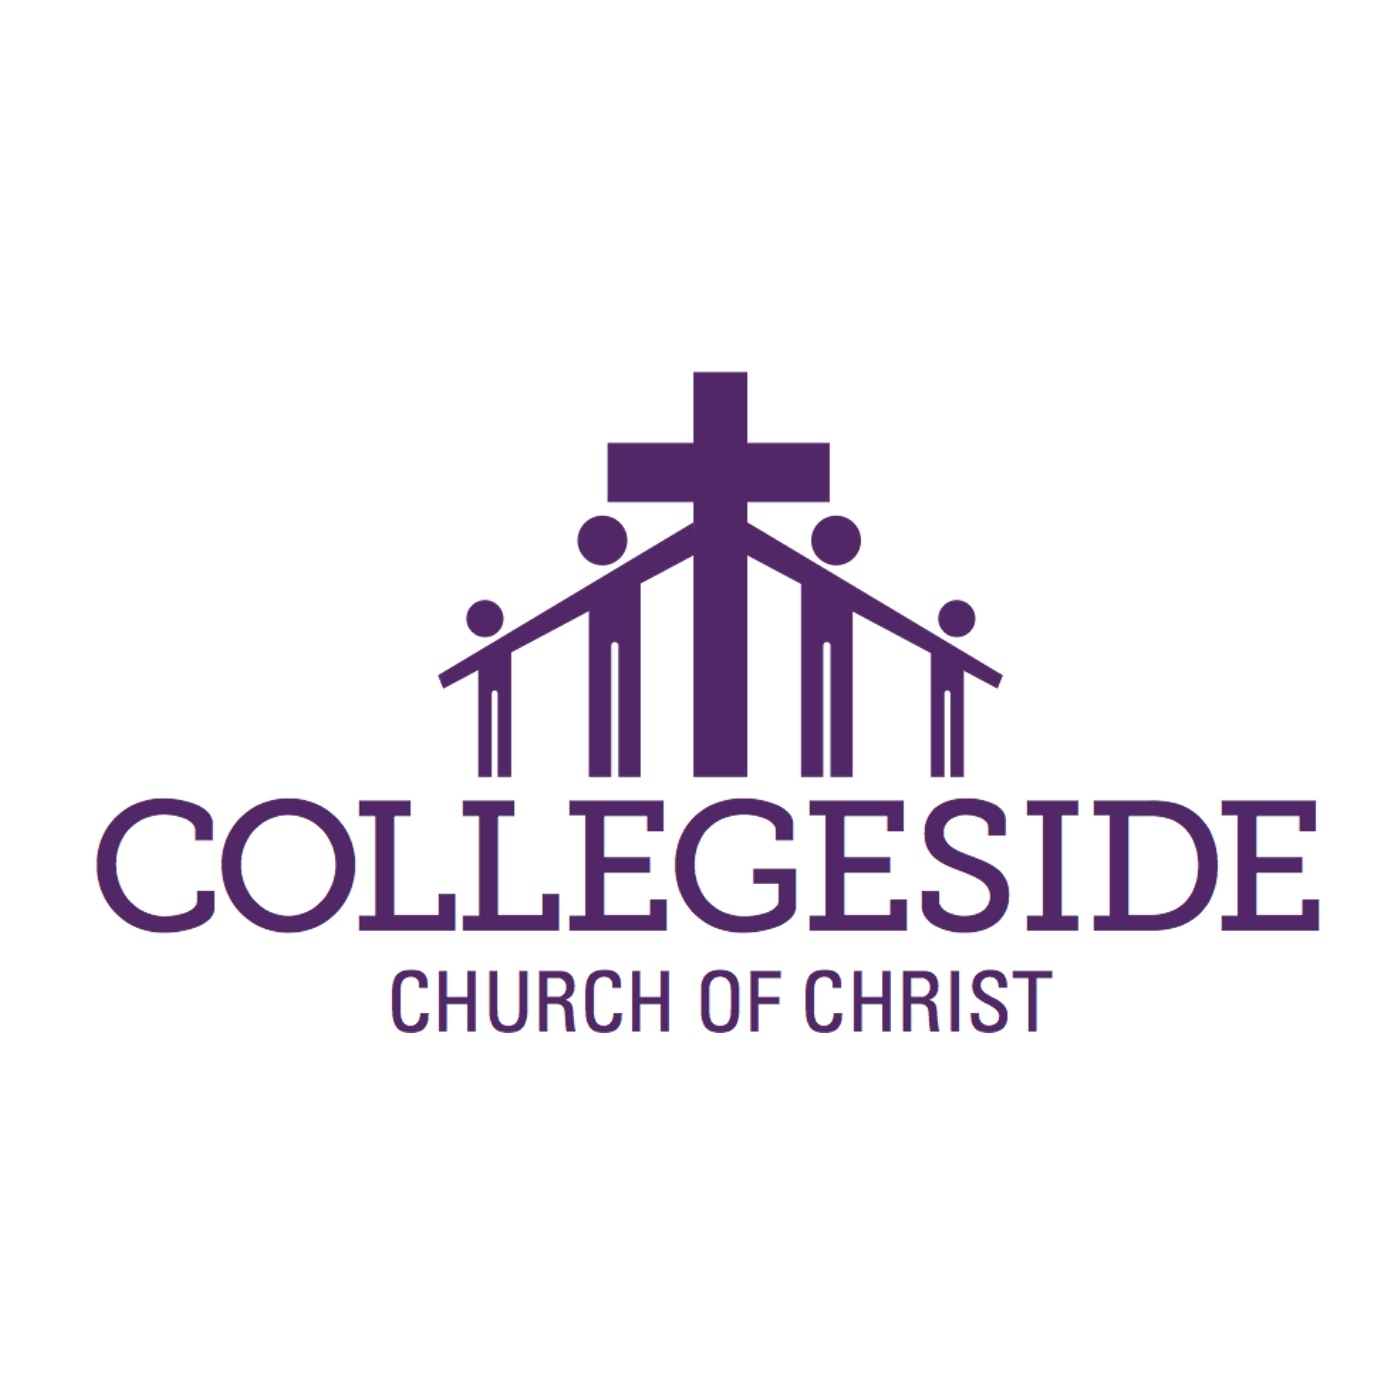 Collegeside Church of Christ